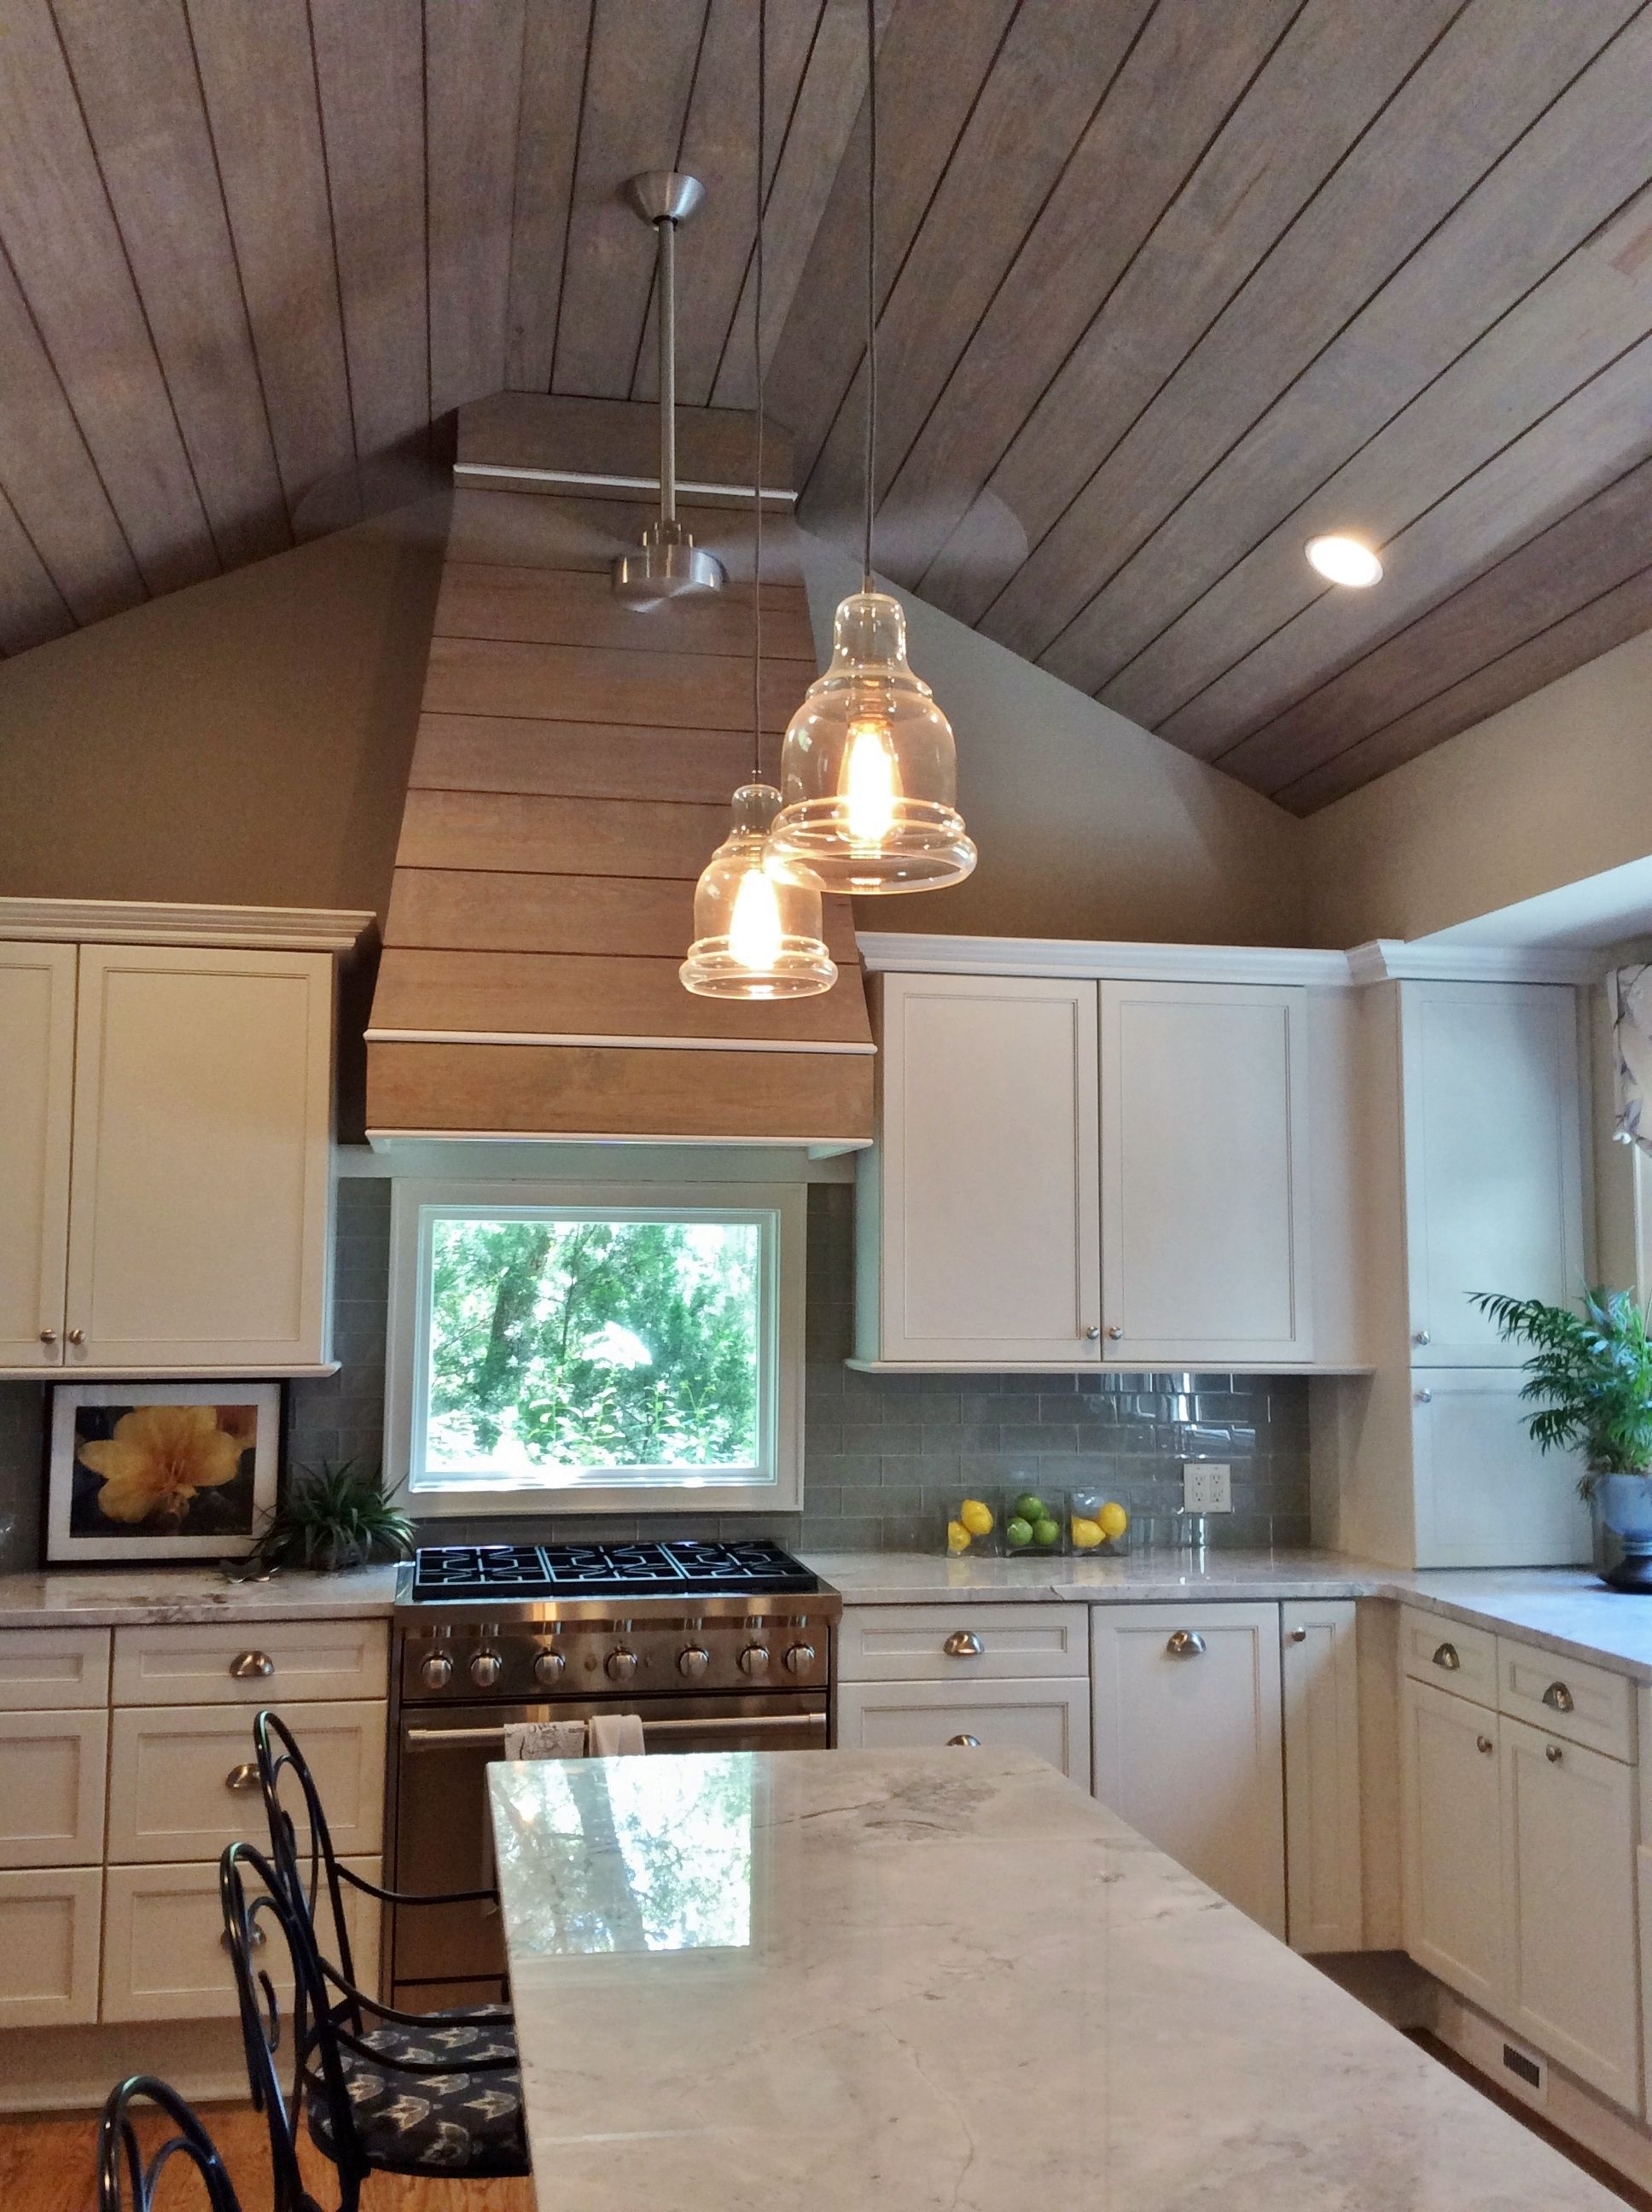 Hood concept shiplap siding was added to the kitchen